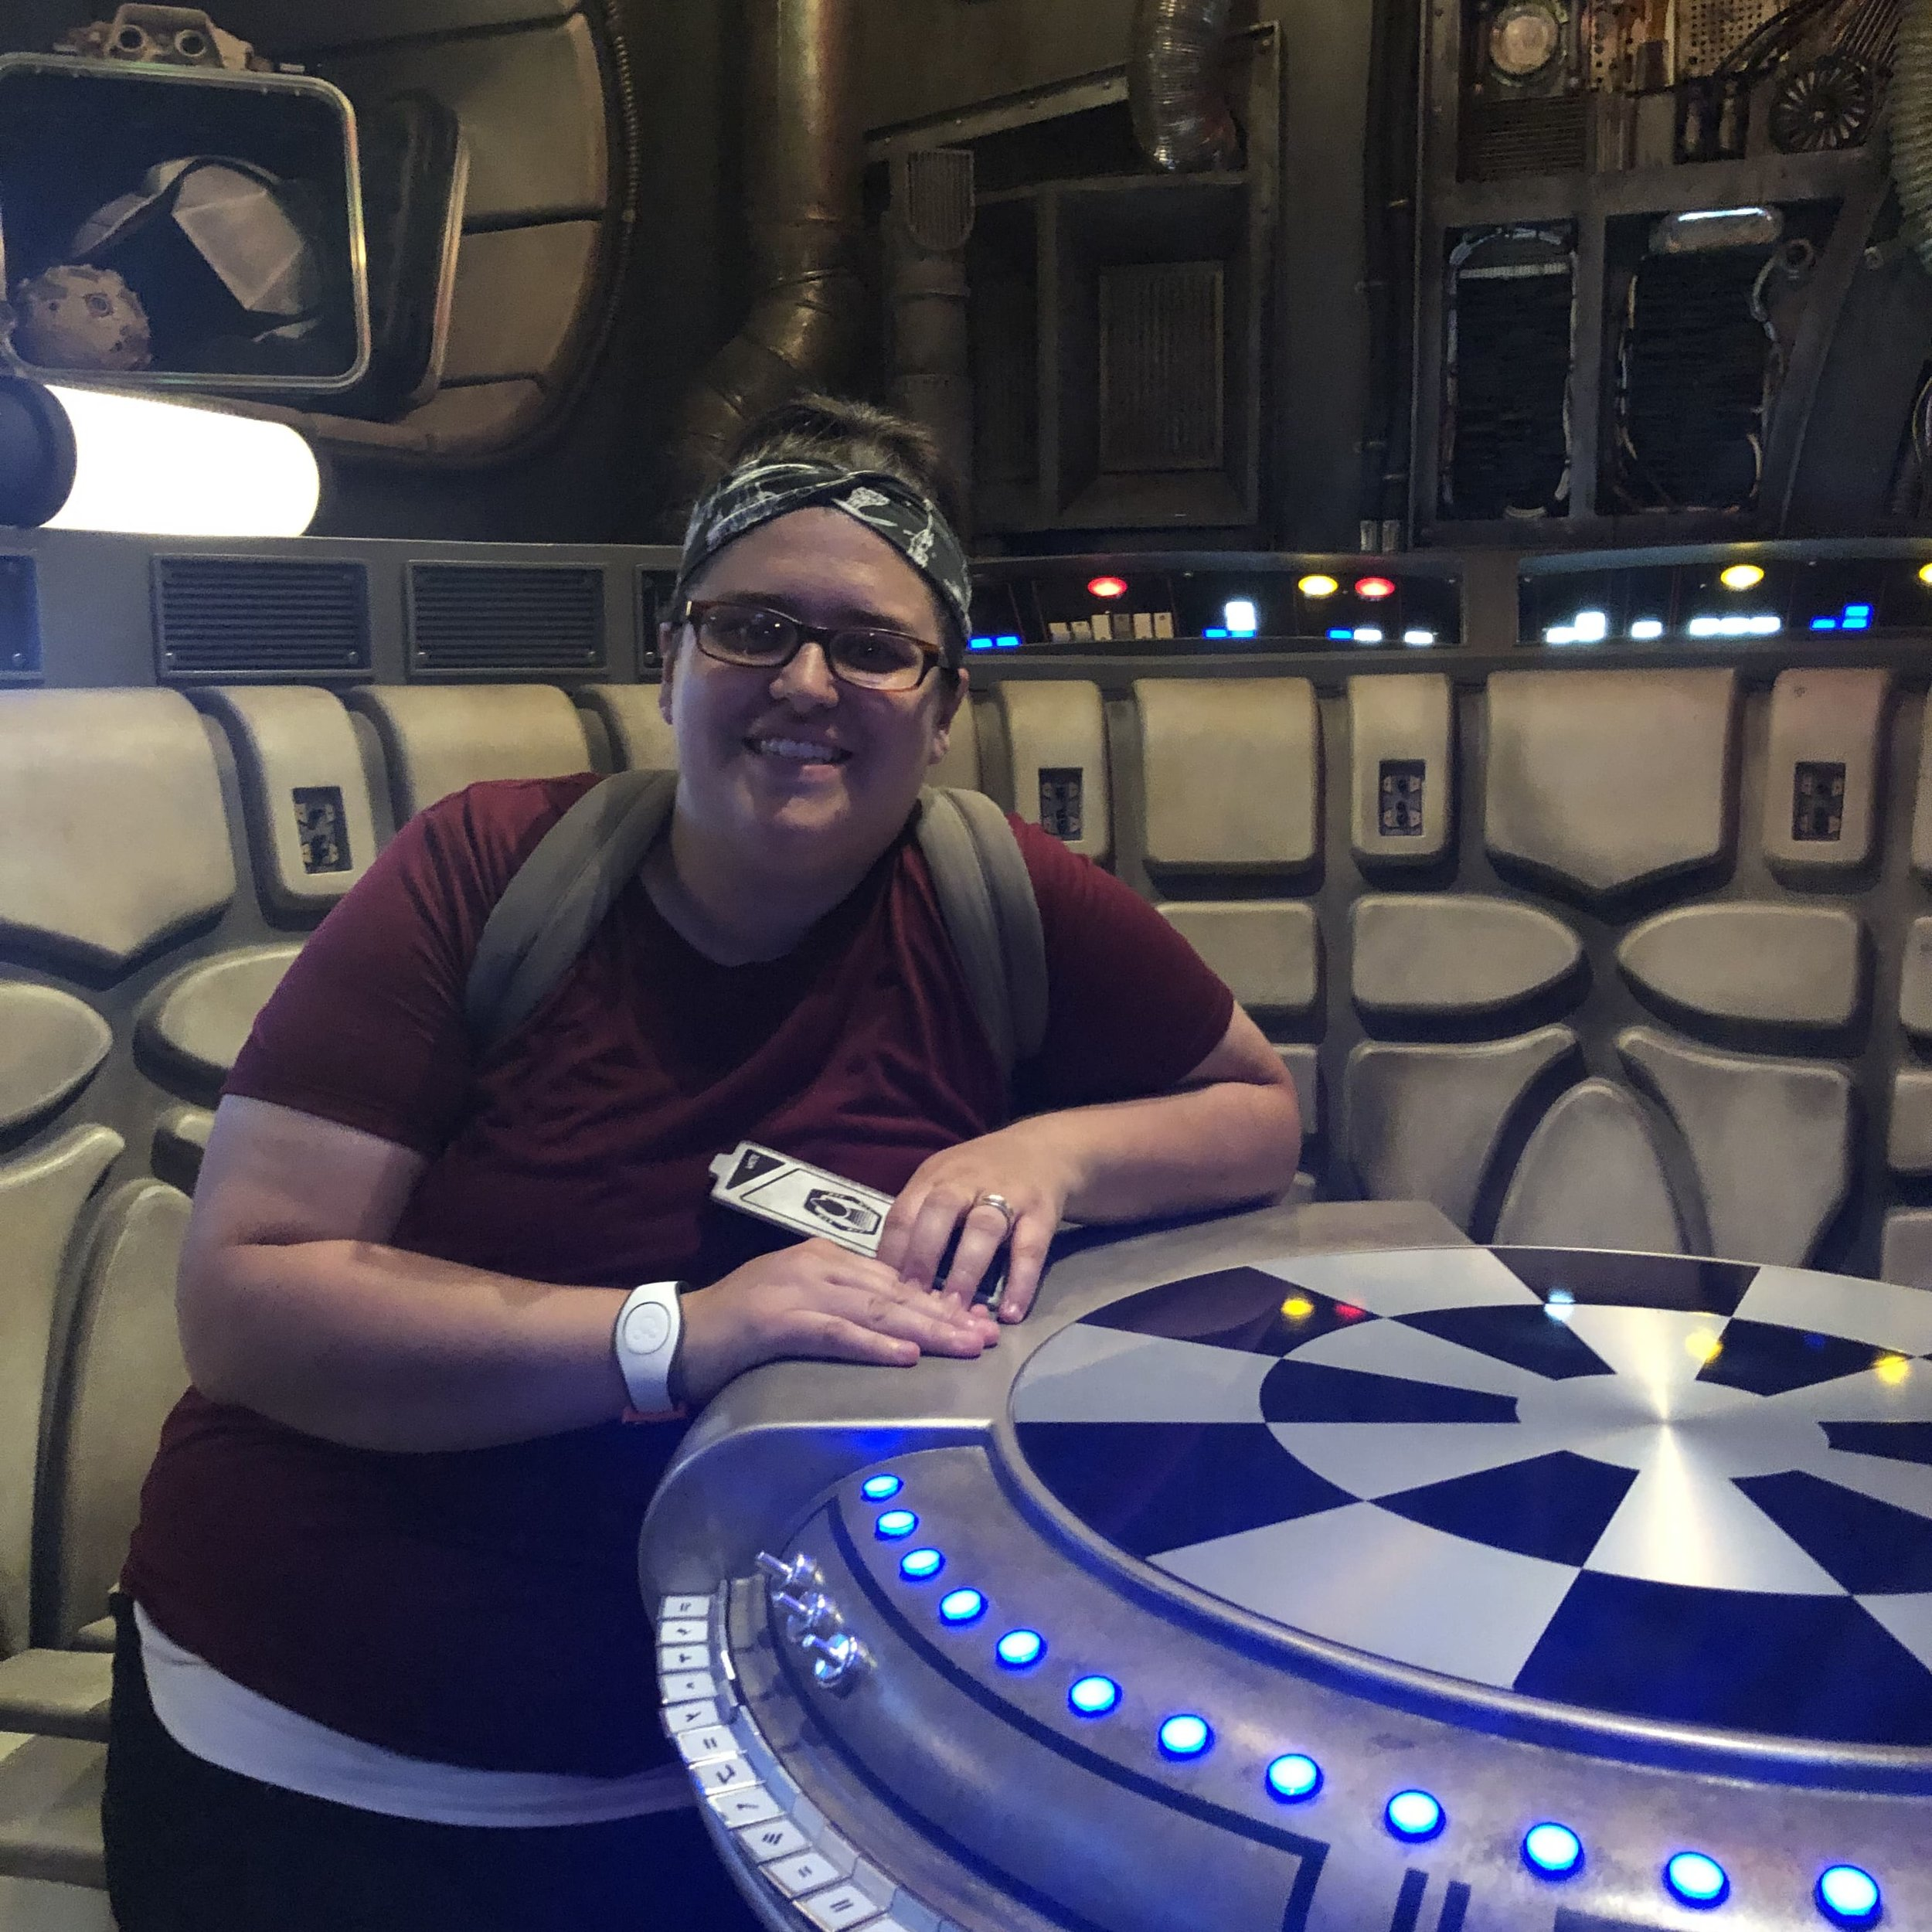 star-wars-millennium falcon-smugglers-run-galaxys-edge-hollywood-studios-julienne-desjardins